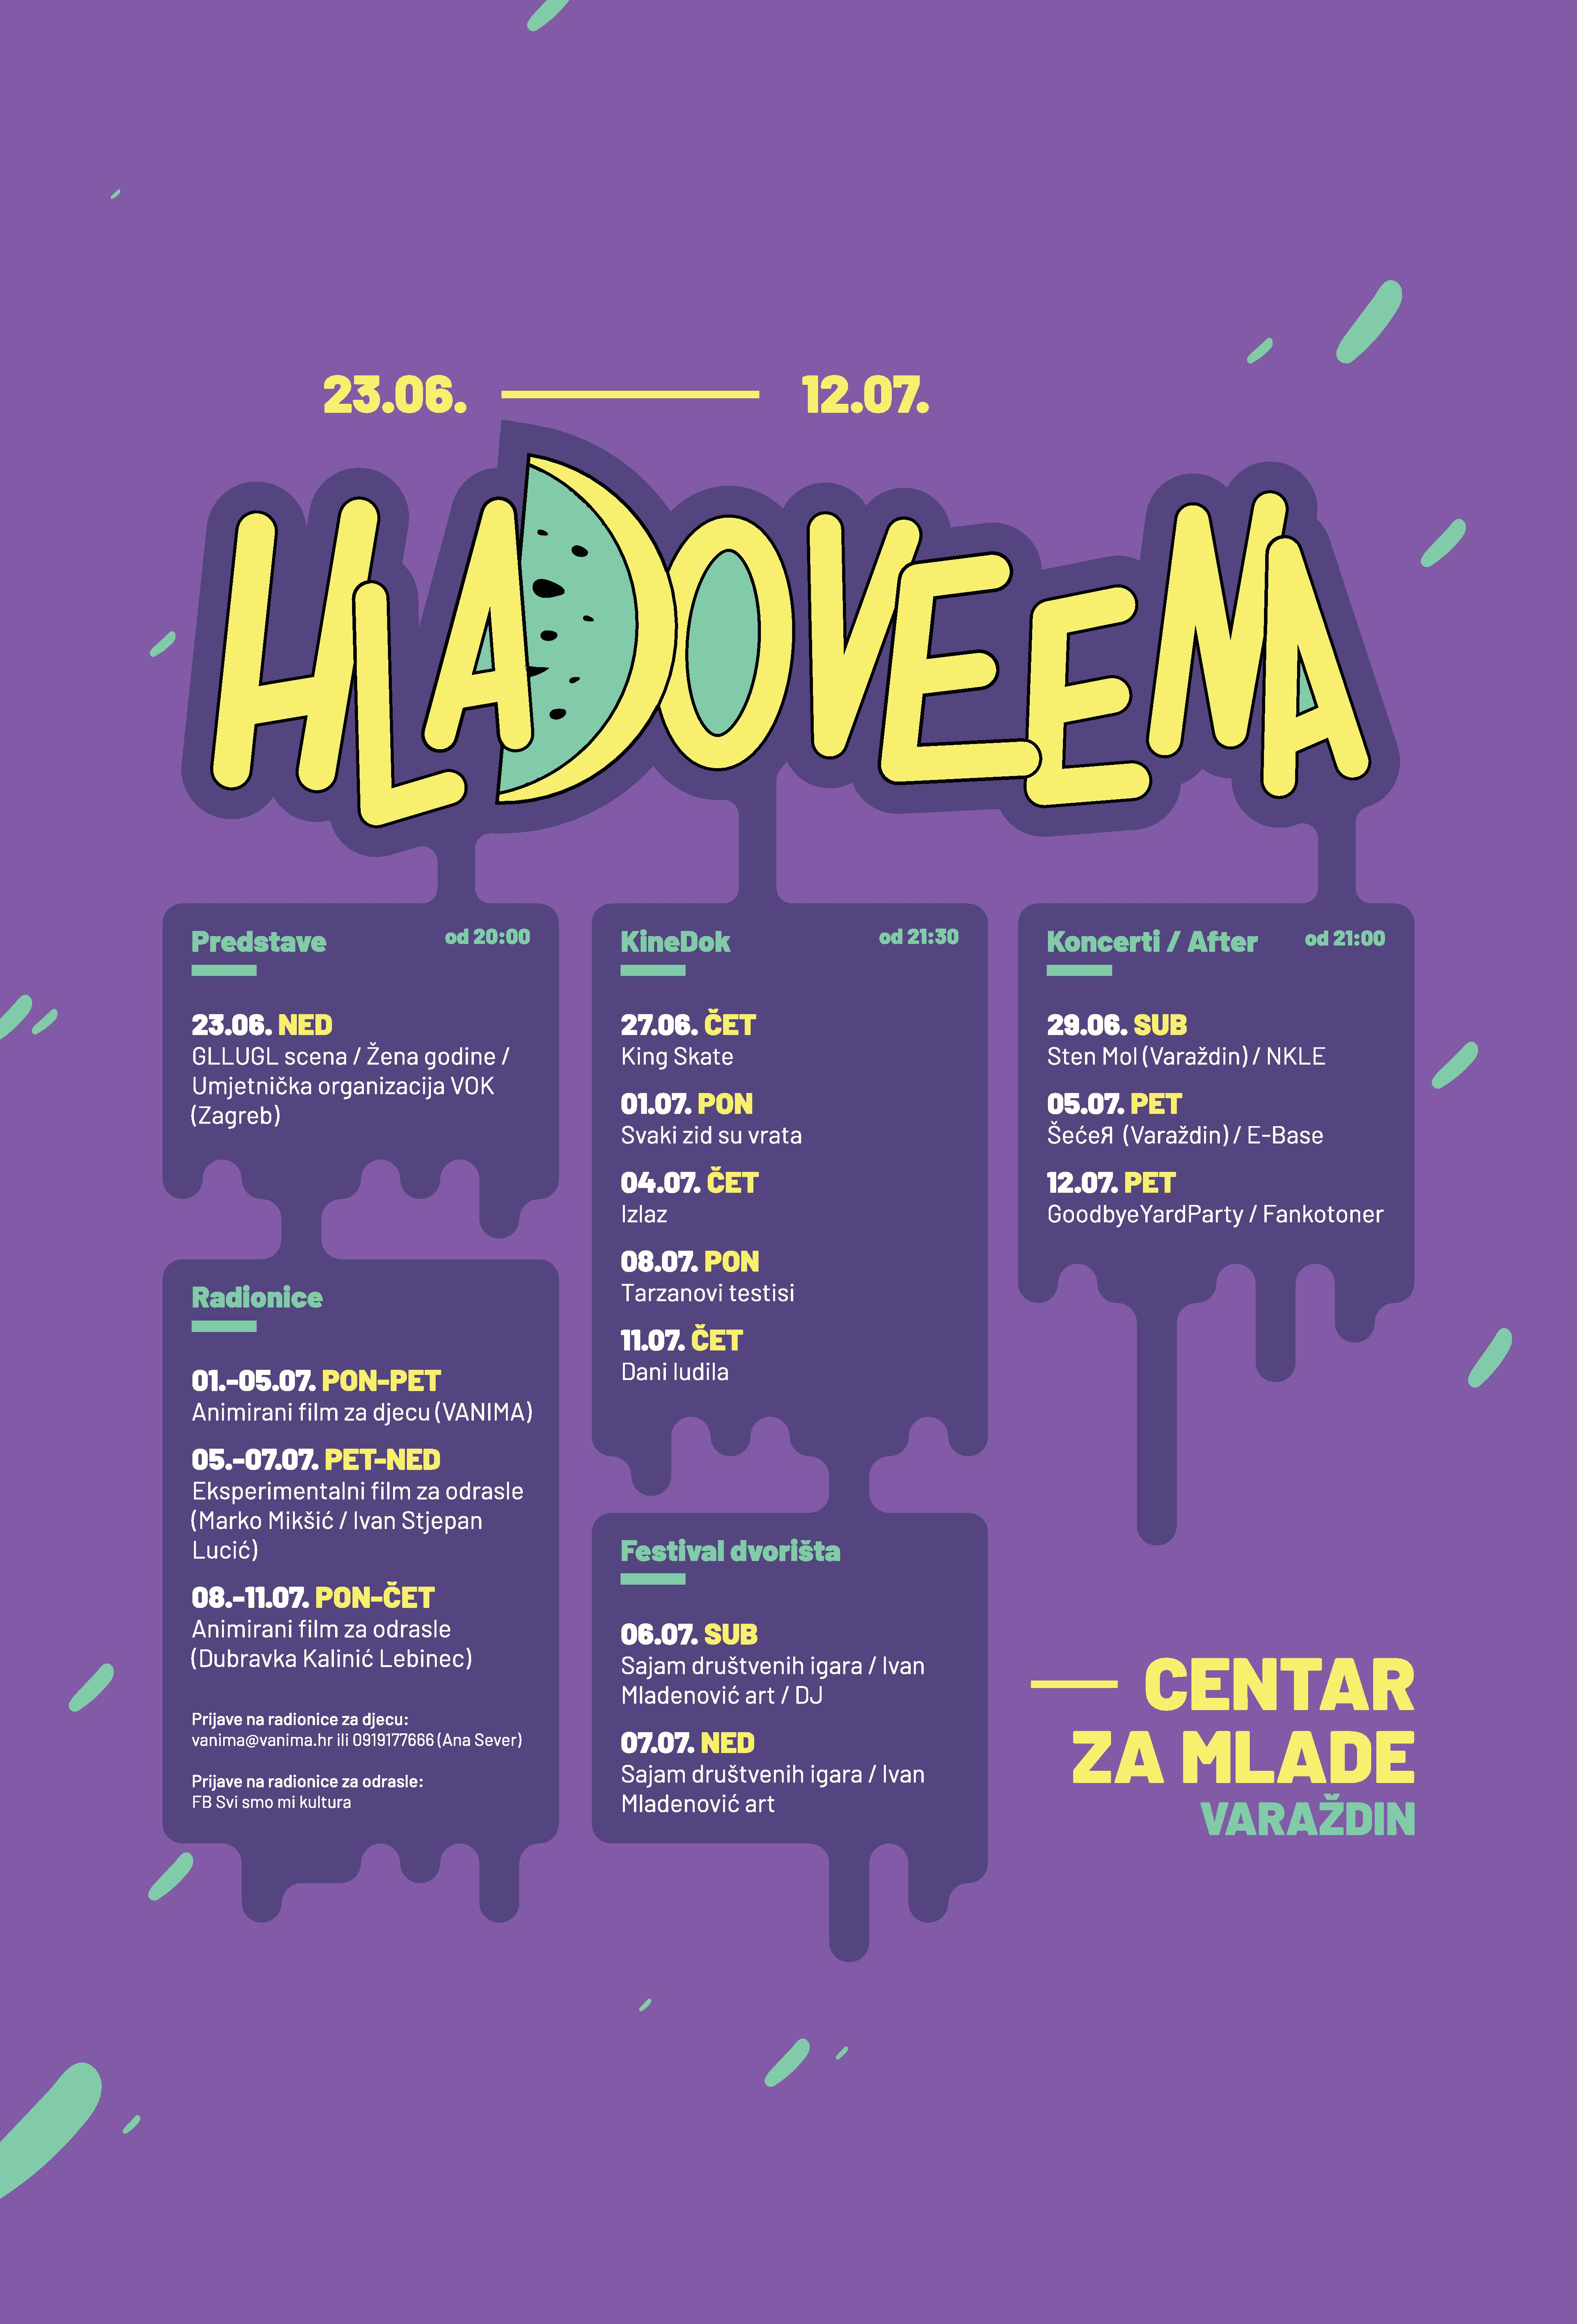 Hladoveena 2019 PROGRAM